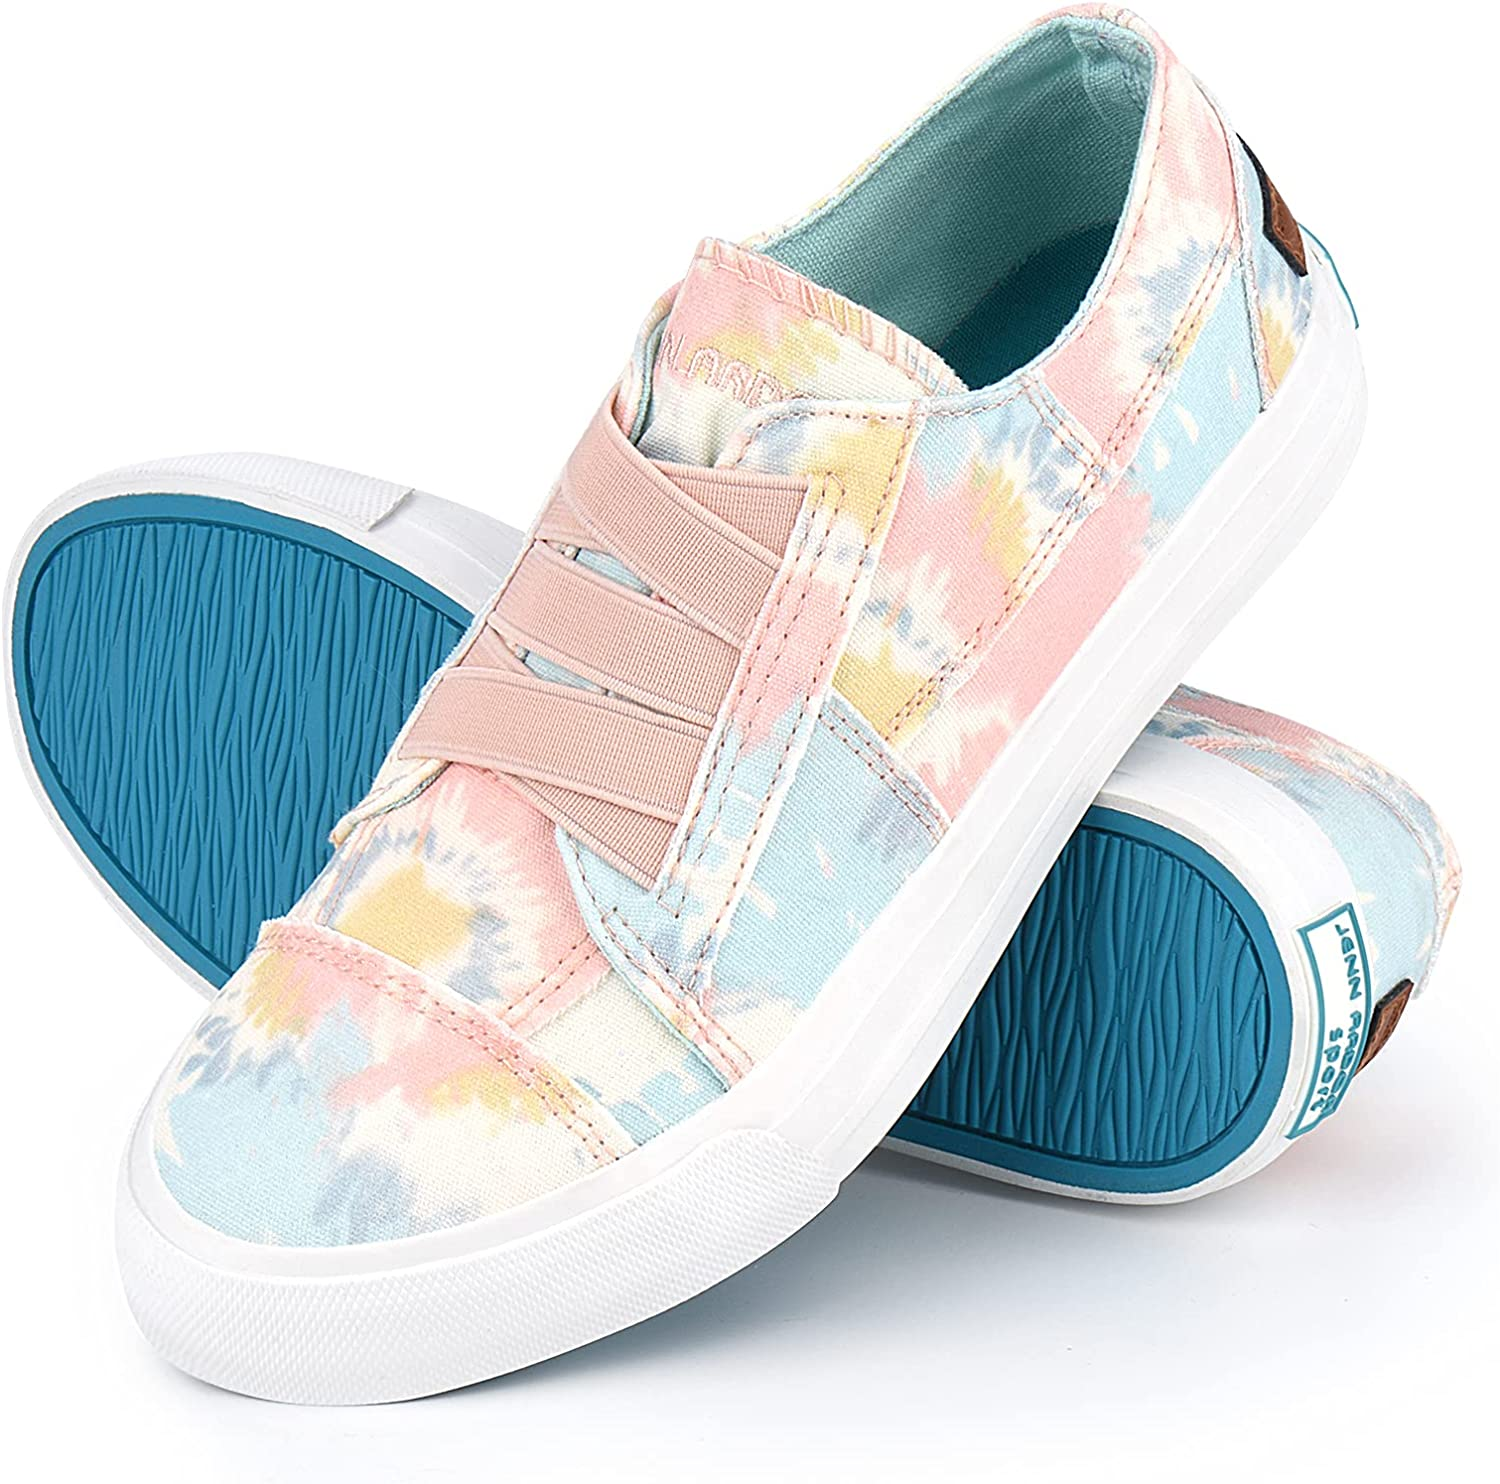 Women Canvas Sneakers Slip On Shoes Fashion Low Tops Sneakers Casual Walking Shoes Comfortable